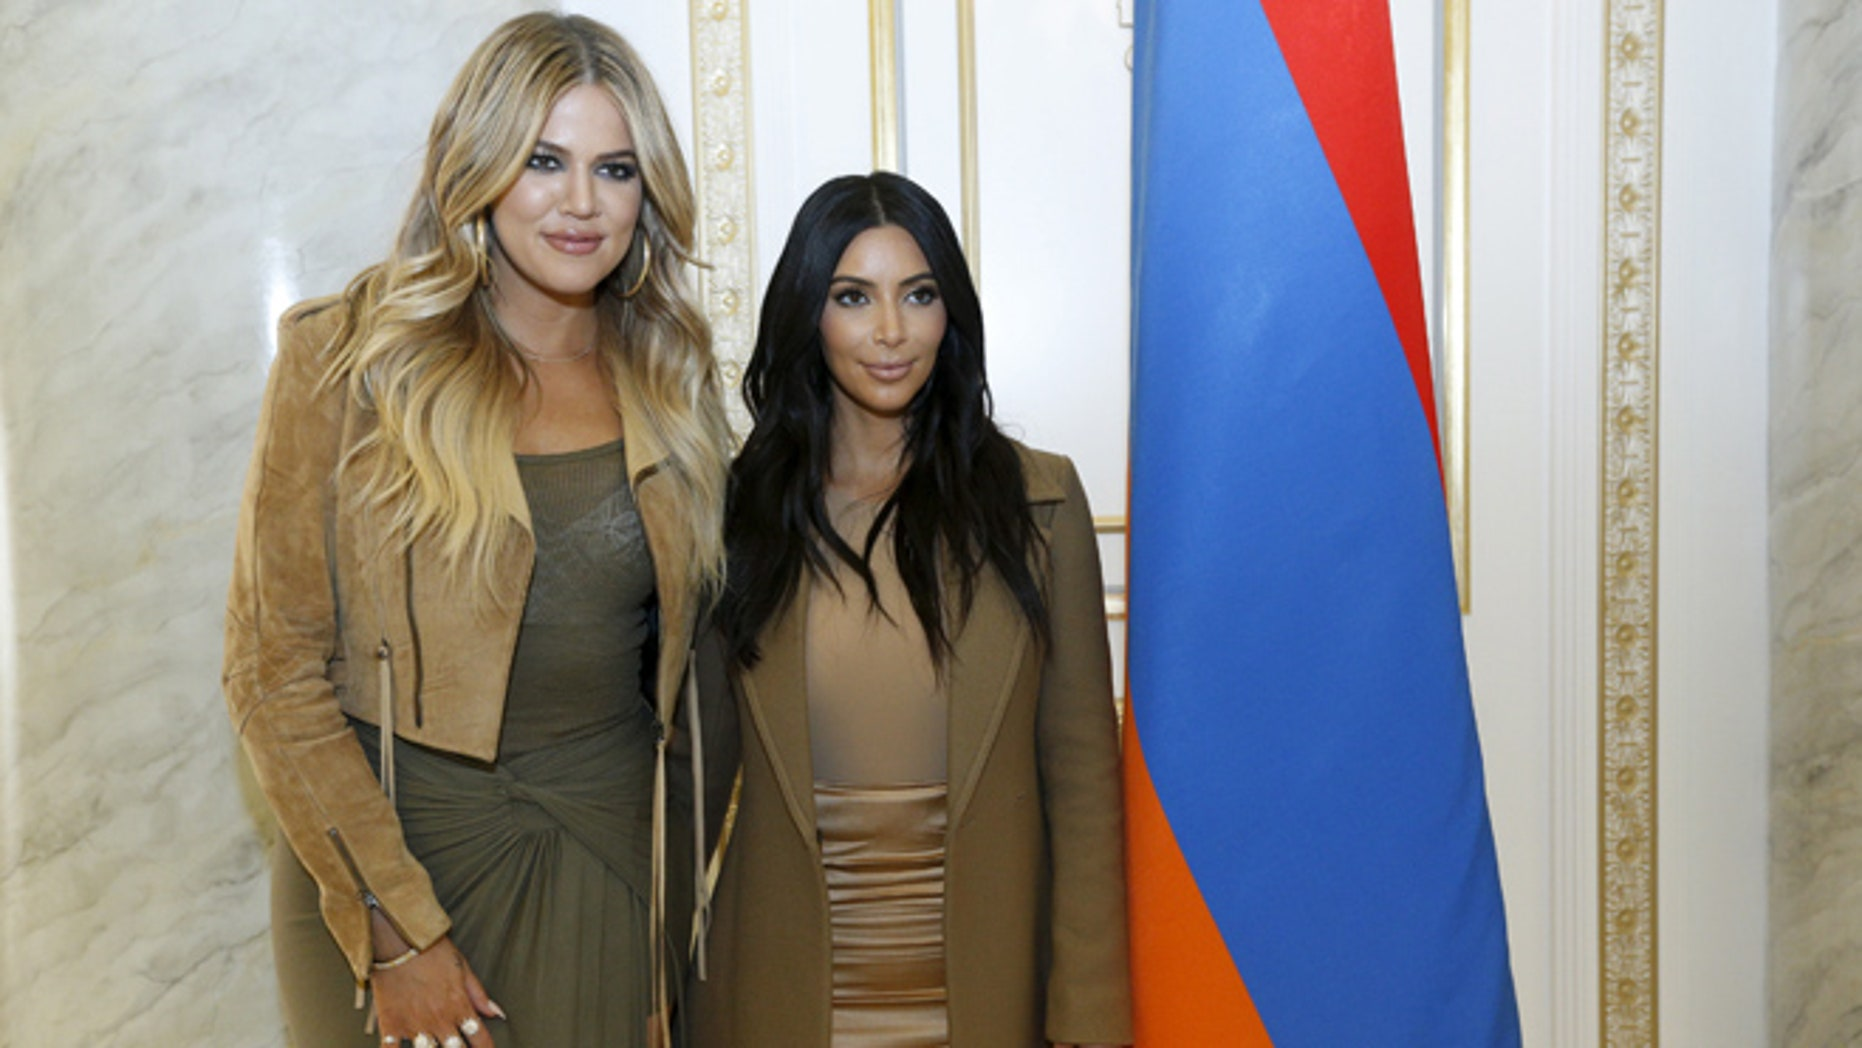 Khloe and Kim Kardashian have spoken out against the immigration ban.